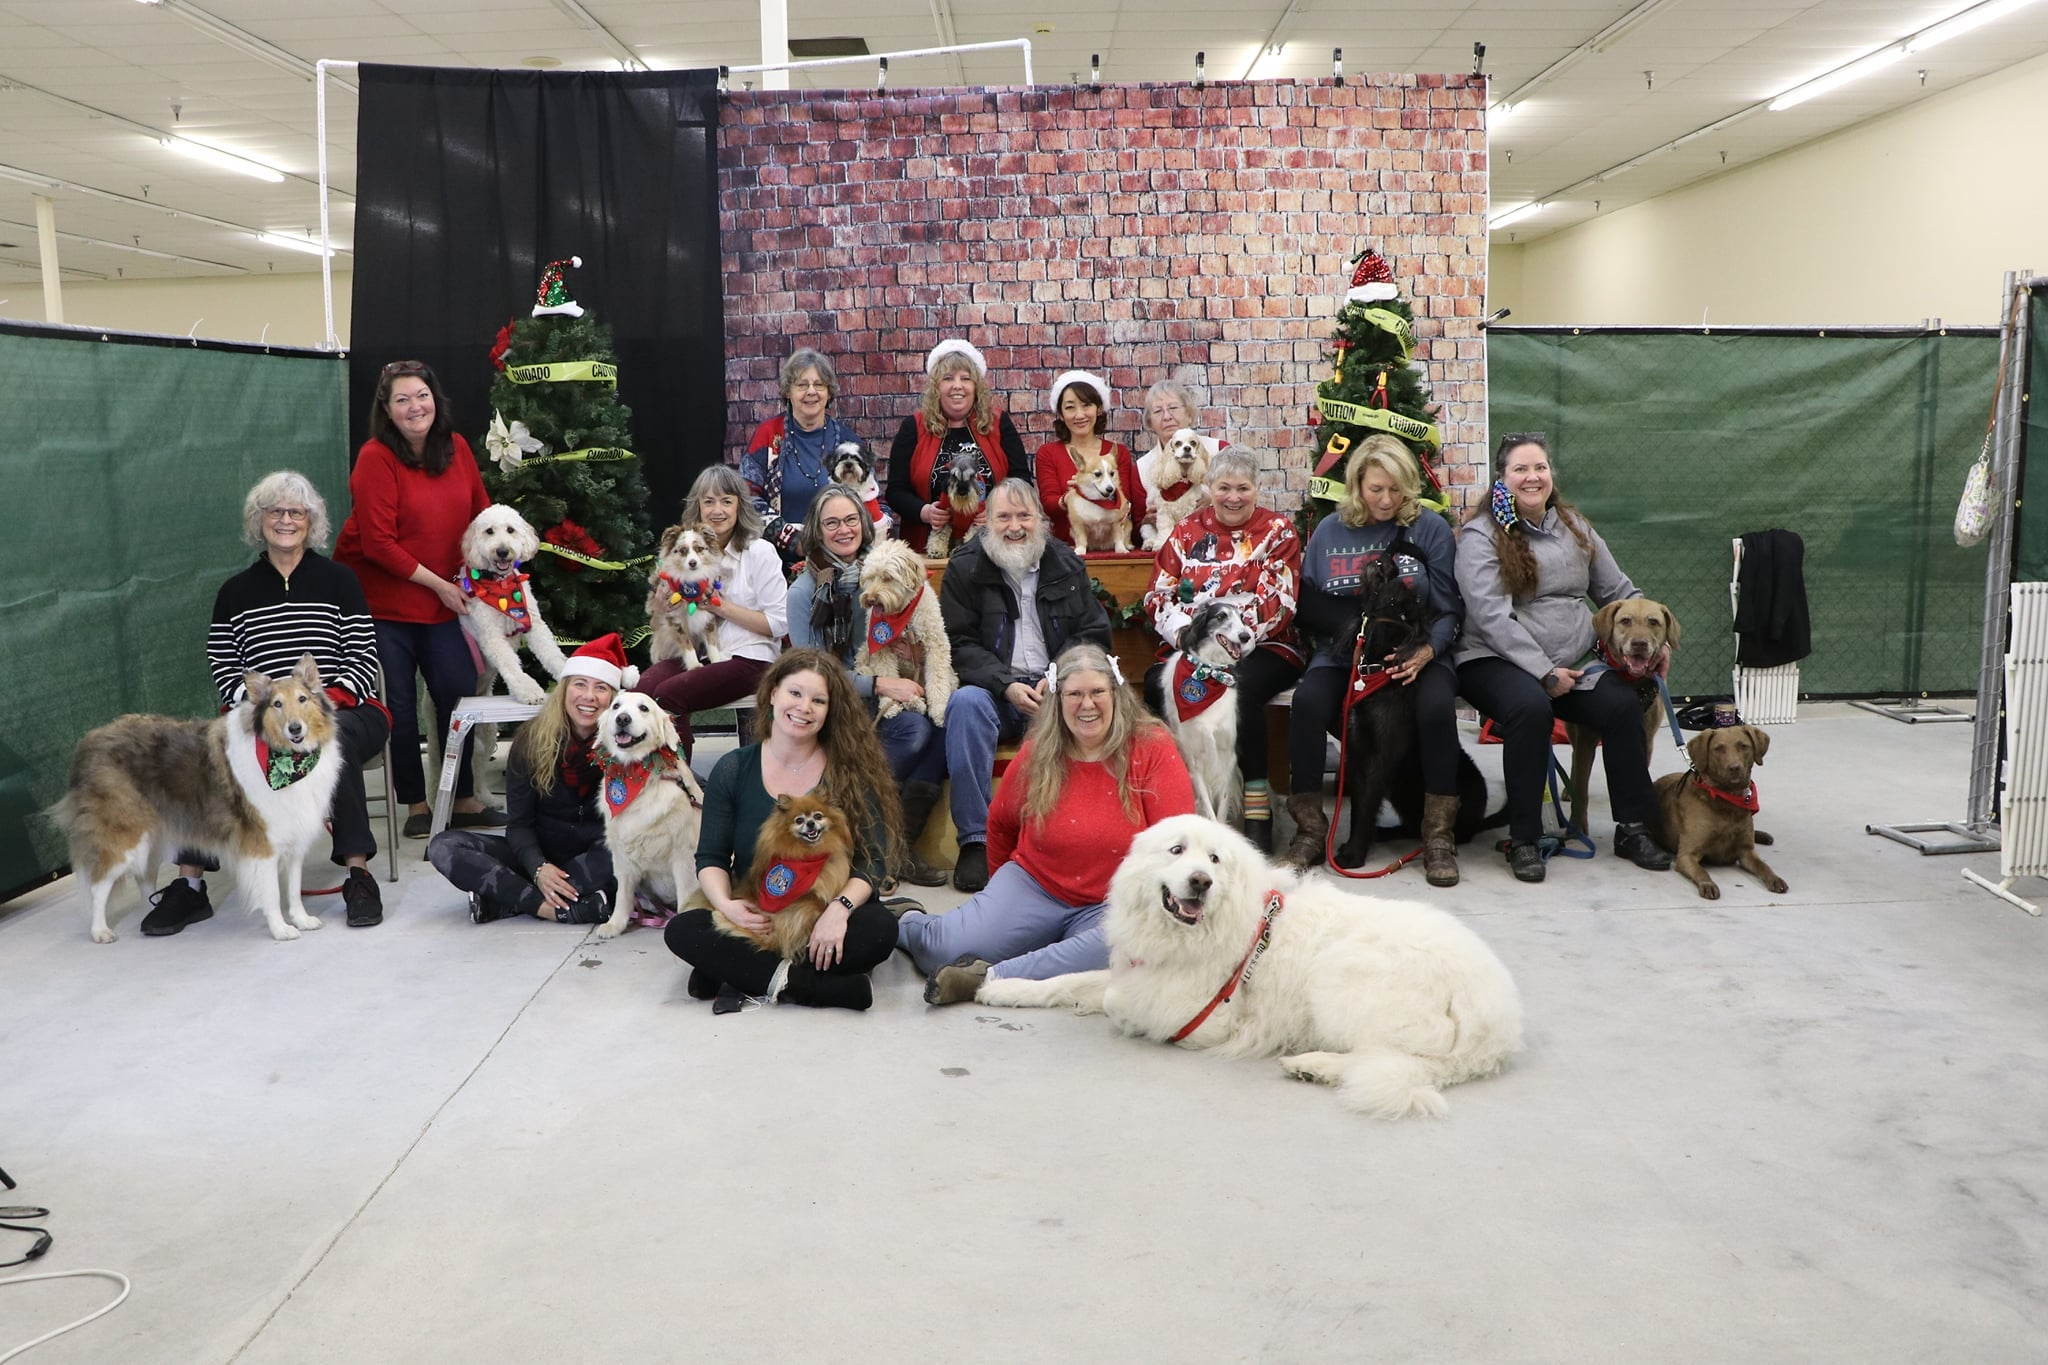 Therapy Dogs International